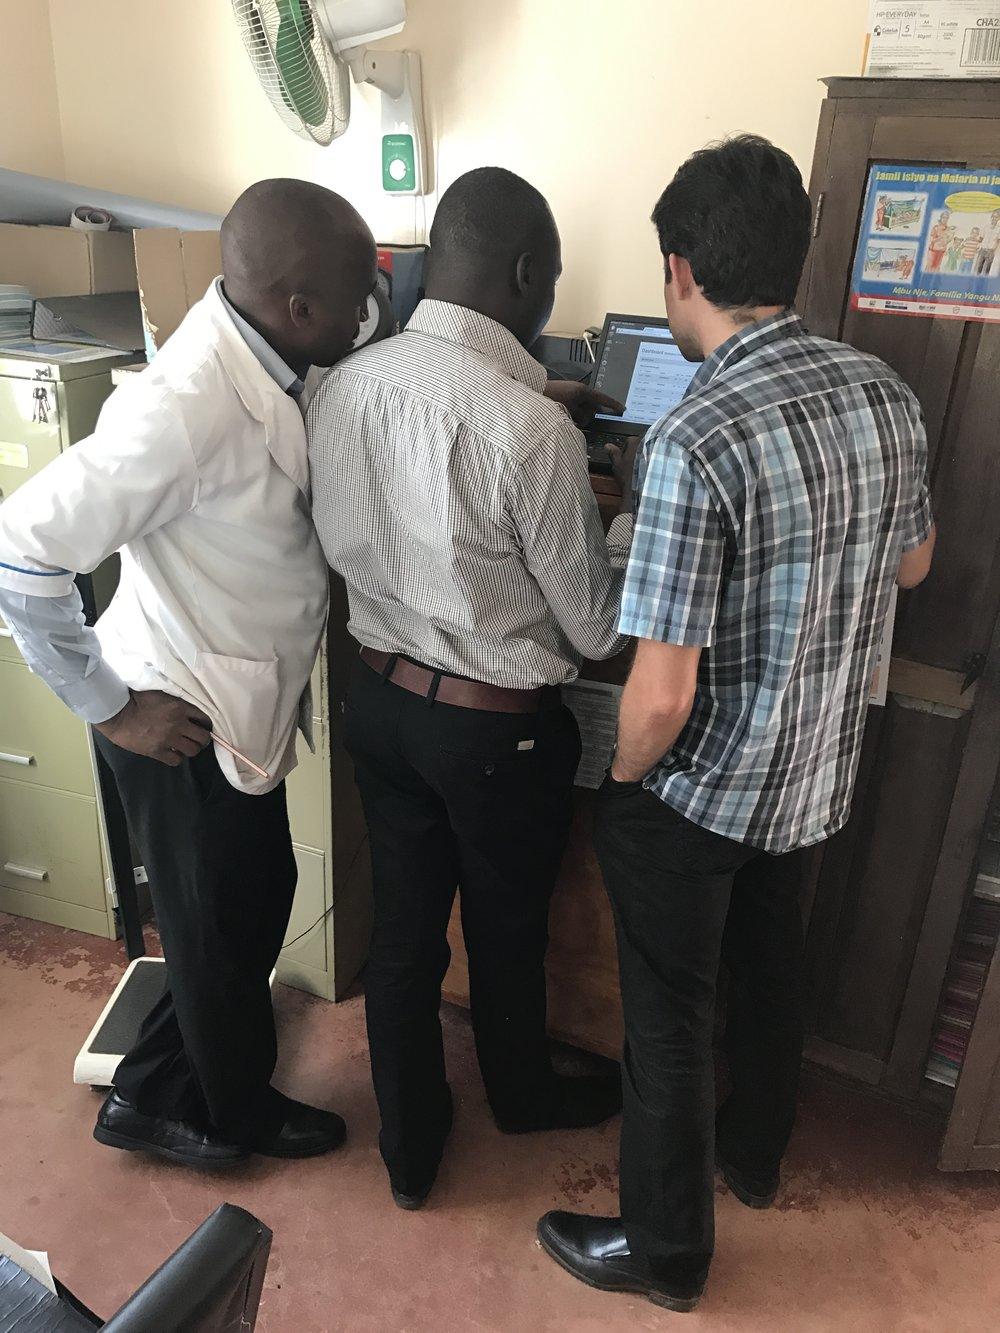 Reviewing the Chronic Disease data on the computer provided by Naweza. The Community Health Workers have screened over 3,000 people over the age of 40 to identify those at risk of a cardiovascular event in the next 10 years,